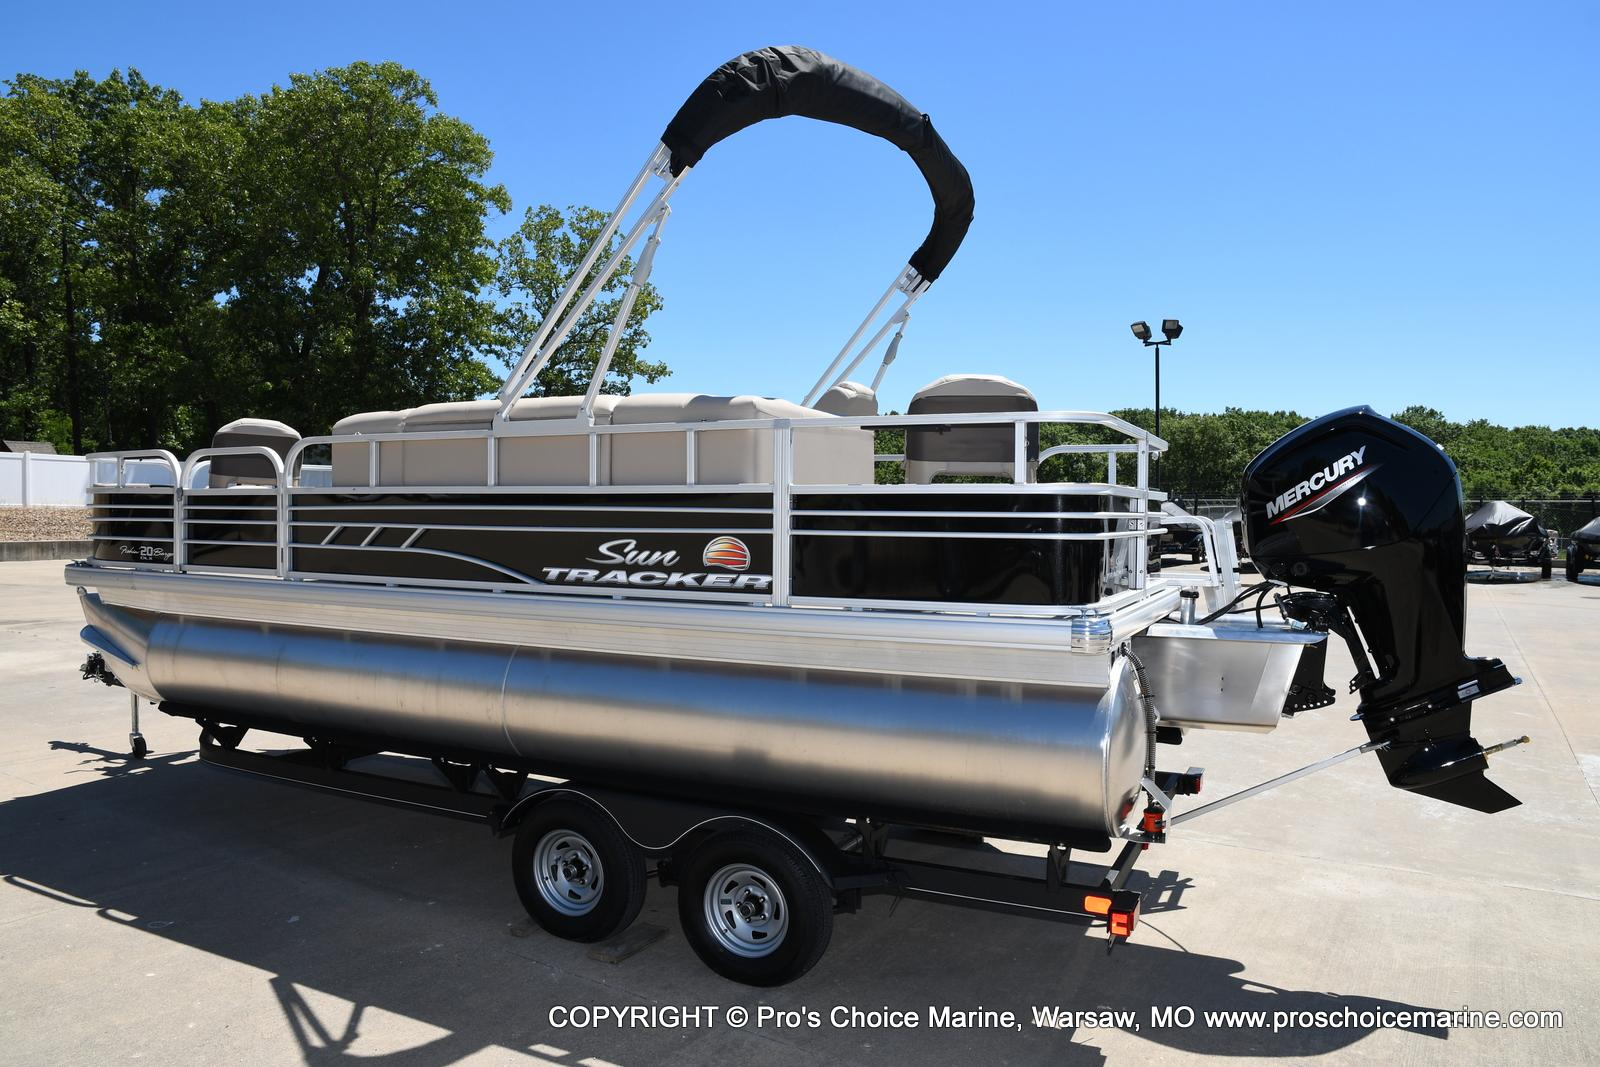 2021 Sun Tracker boat for sale, model of the boat is Fishin' Barge 20 DLX & Image # 12 of 50